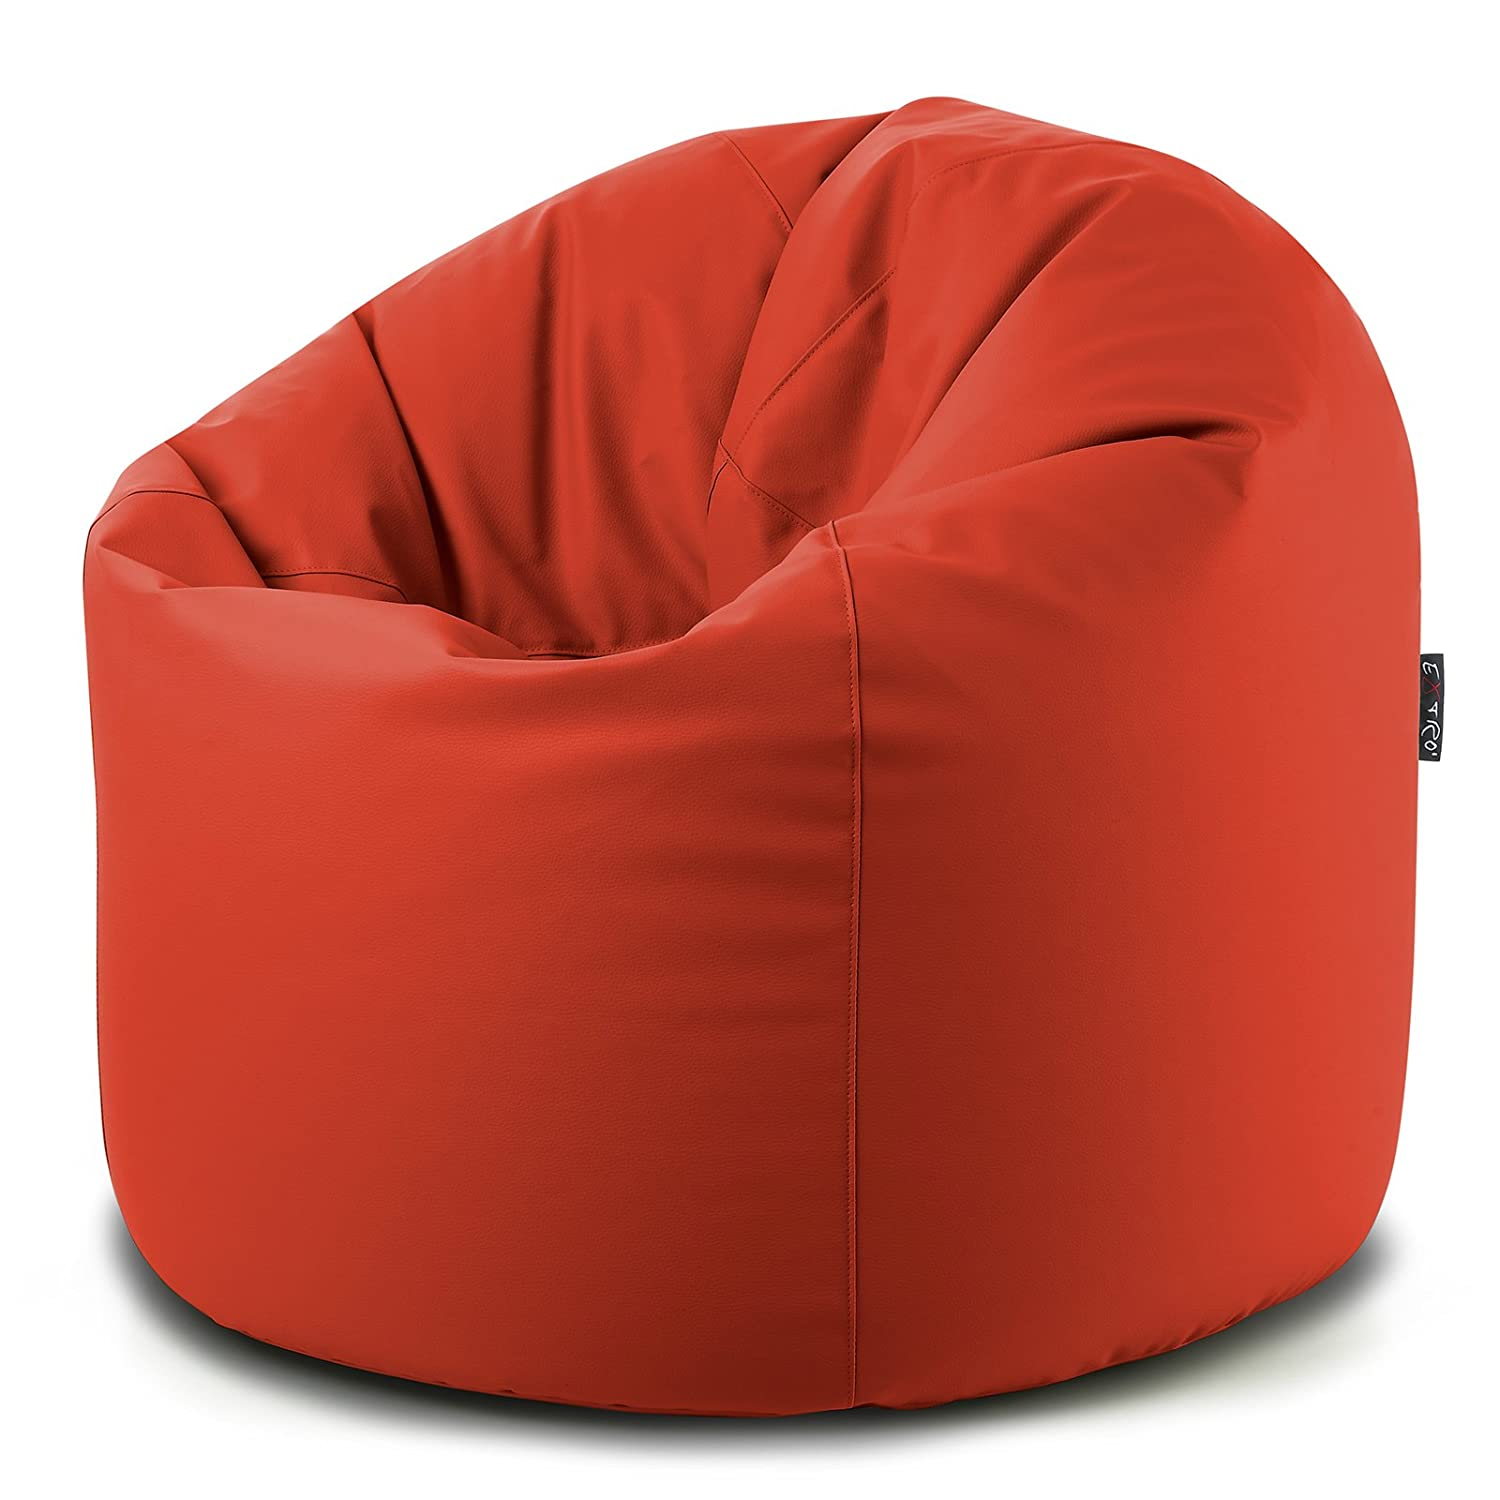 good xxl rosso sacco pouf vuoto senza polistirolo interno con lampo sul fondo per riempimento in. Black Bedroom Furniture Sets. Home Design Ideas